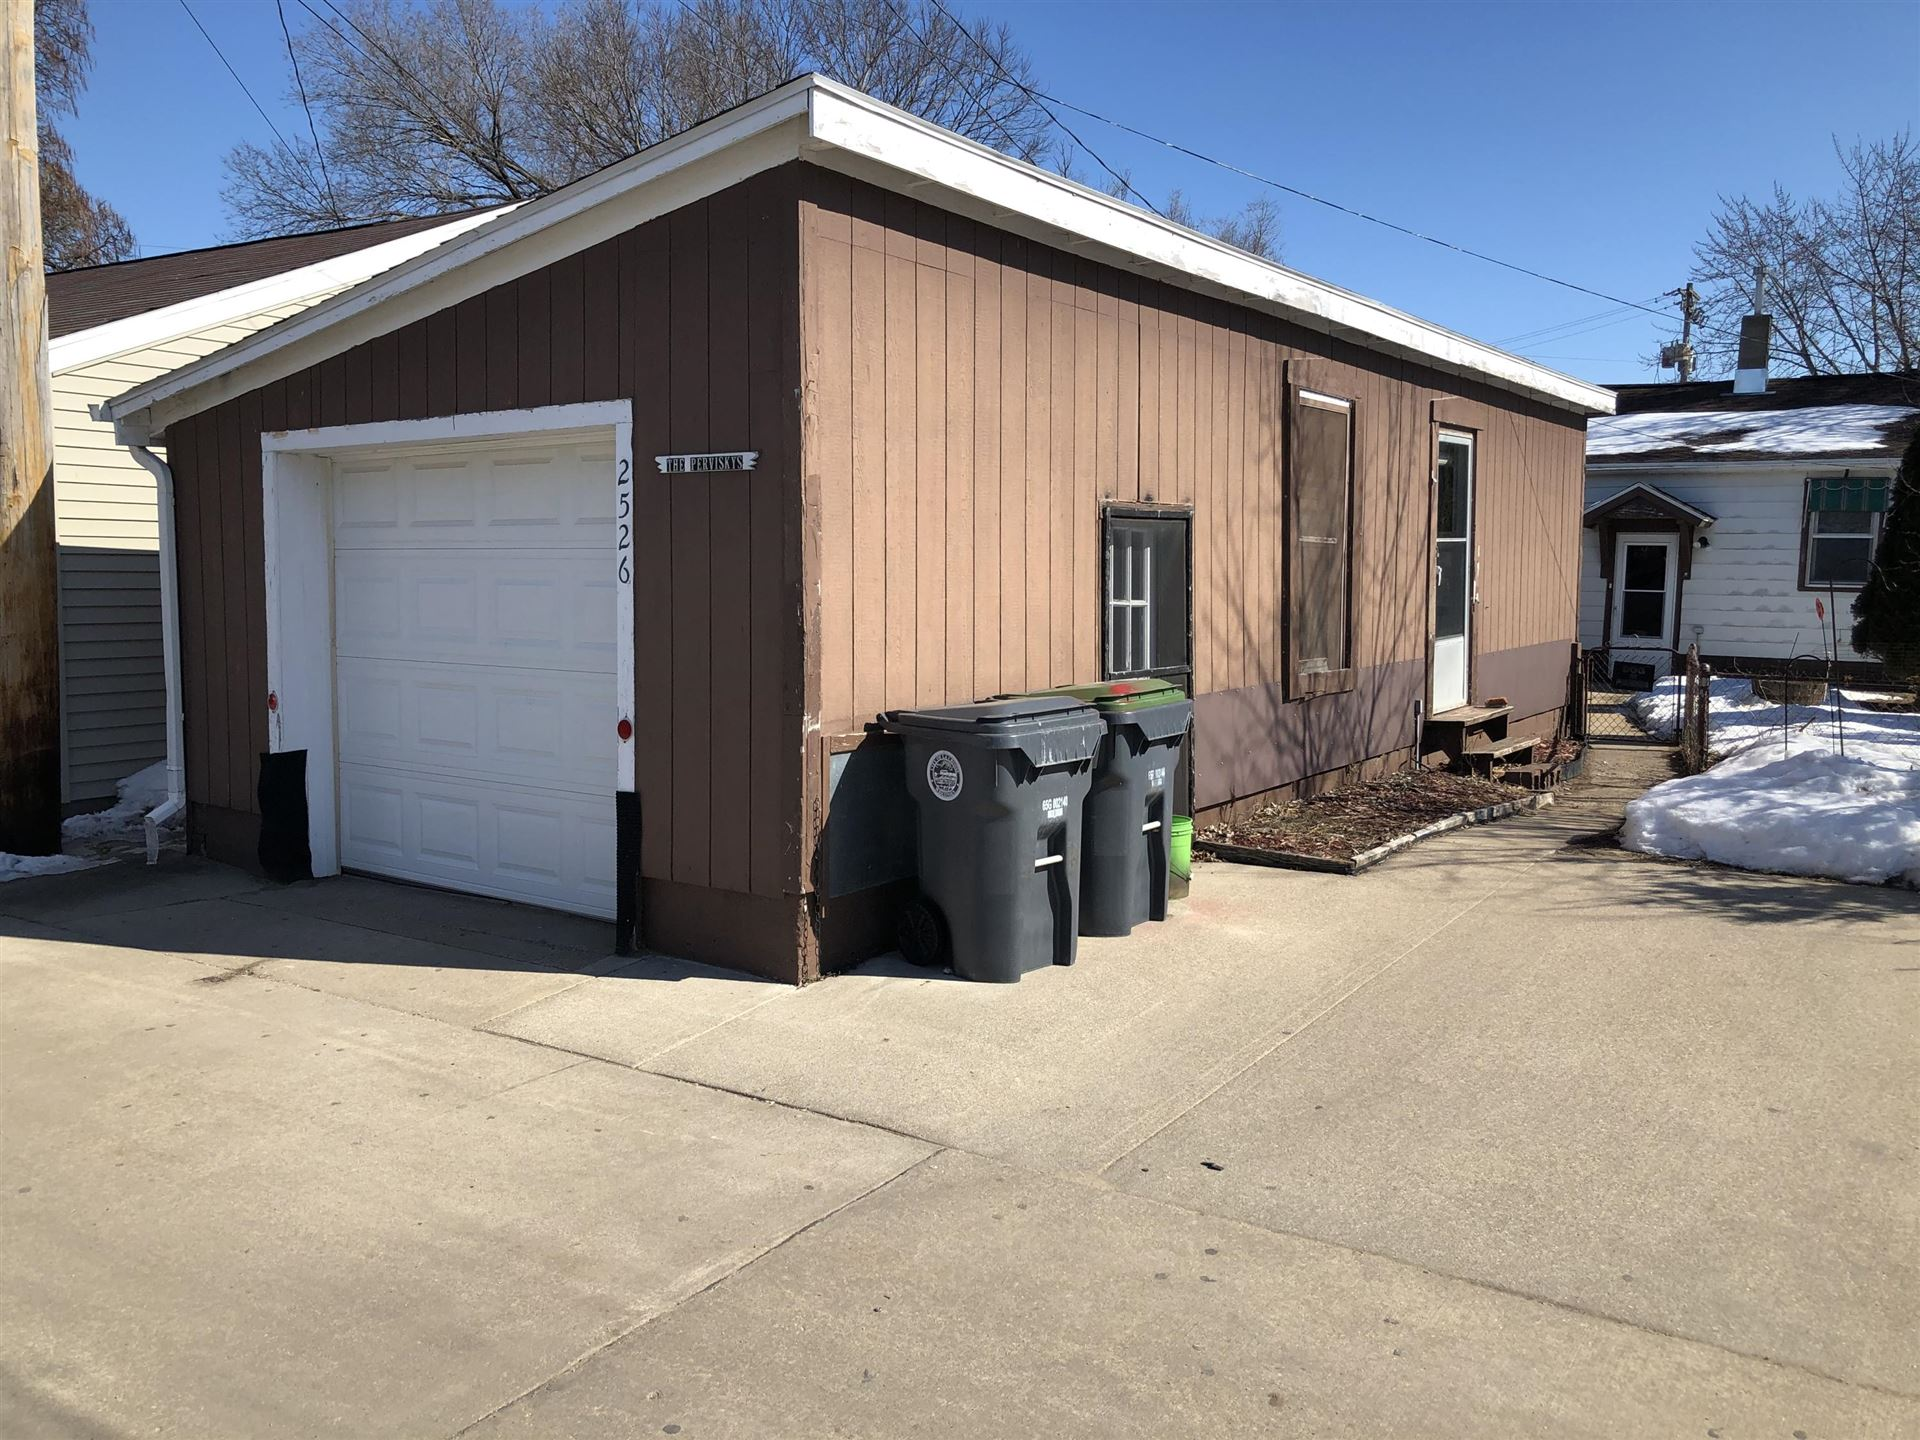 2526 East Ave S, La Crosse, WI 54601 - MLS#: 1680039